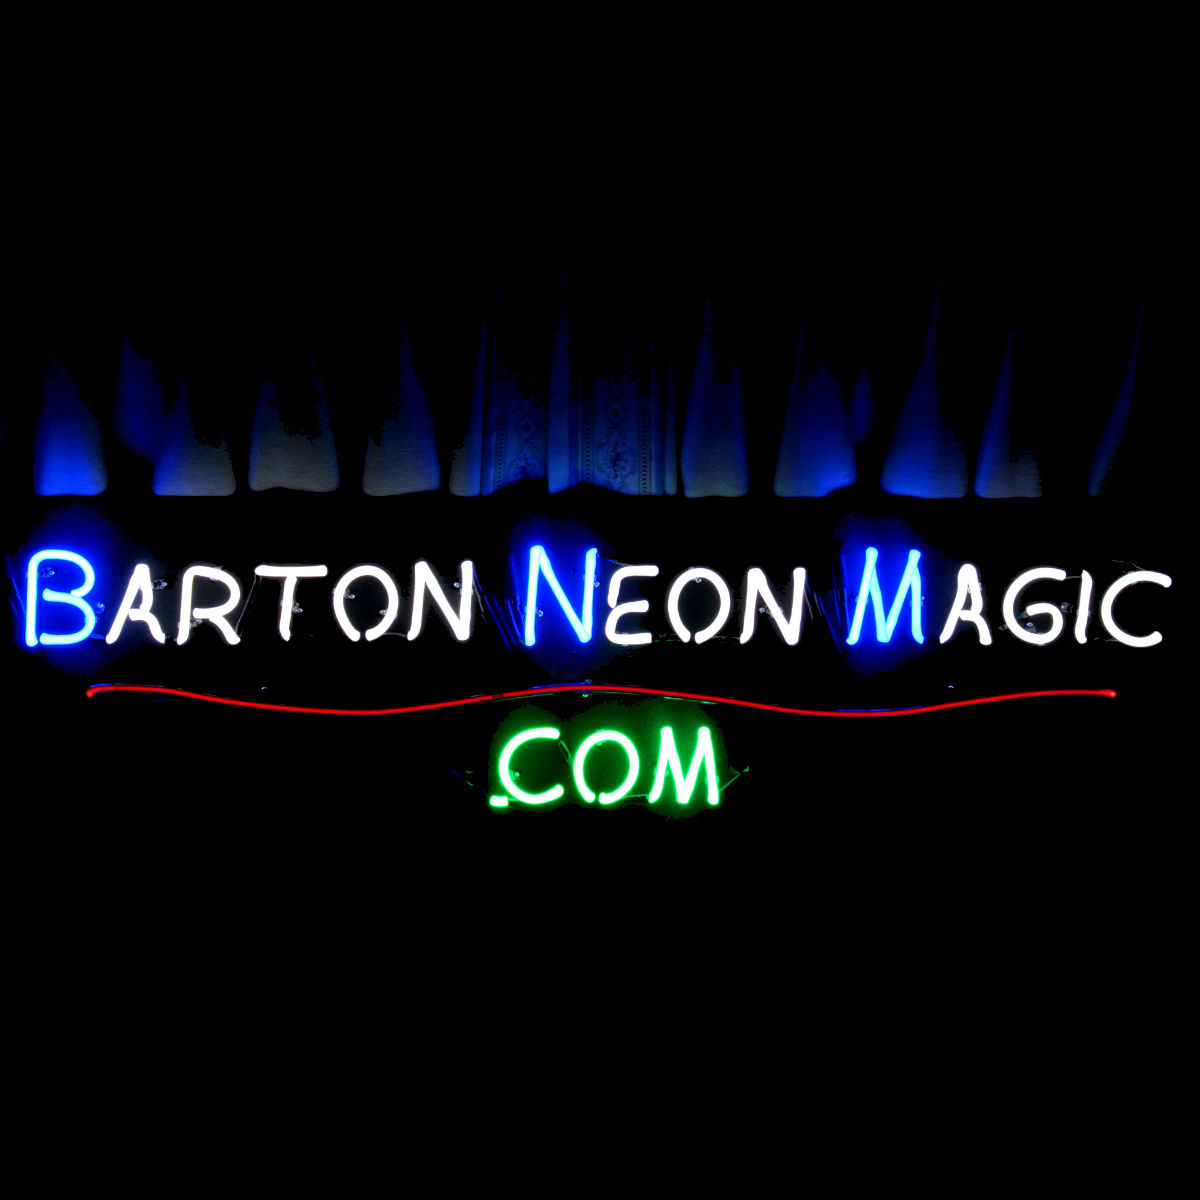 CUSTOM HAND-BLOWN AUTOMOTIVE NEON SIGNS FOR CLASSIC CARS! - by John Barton - BartonNeonMagic.com